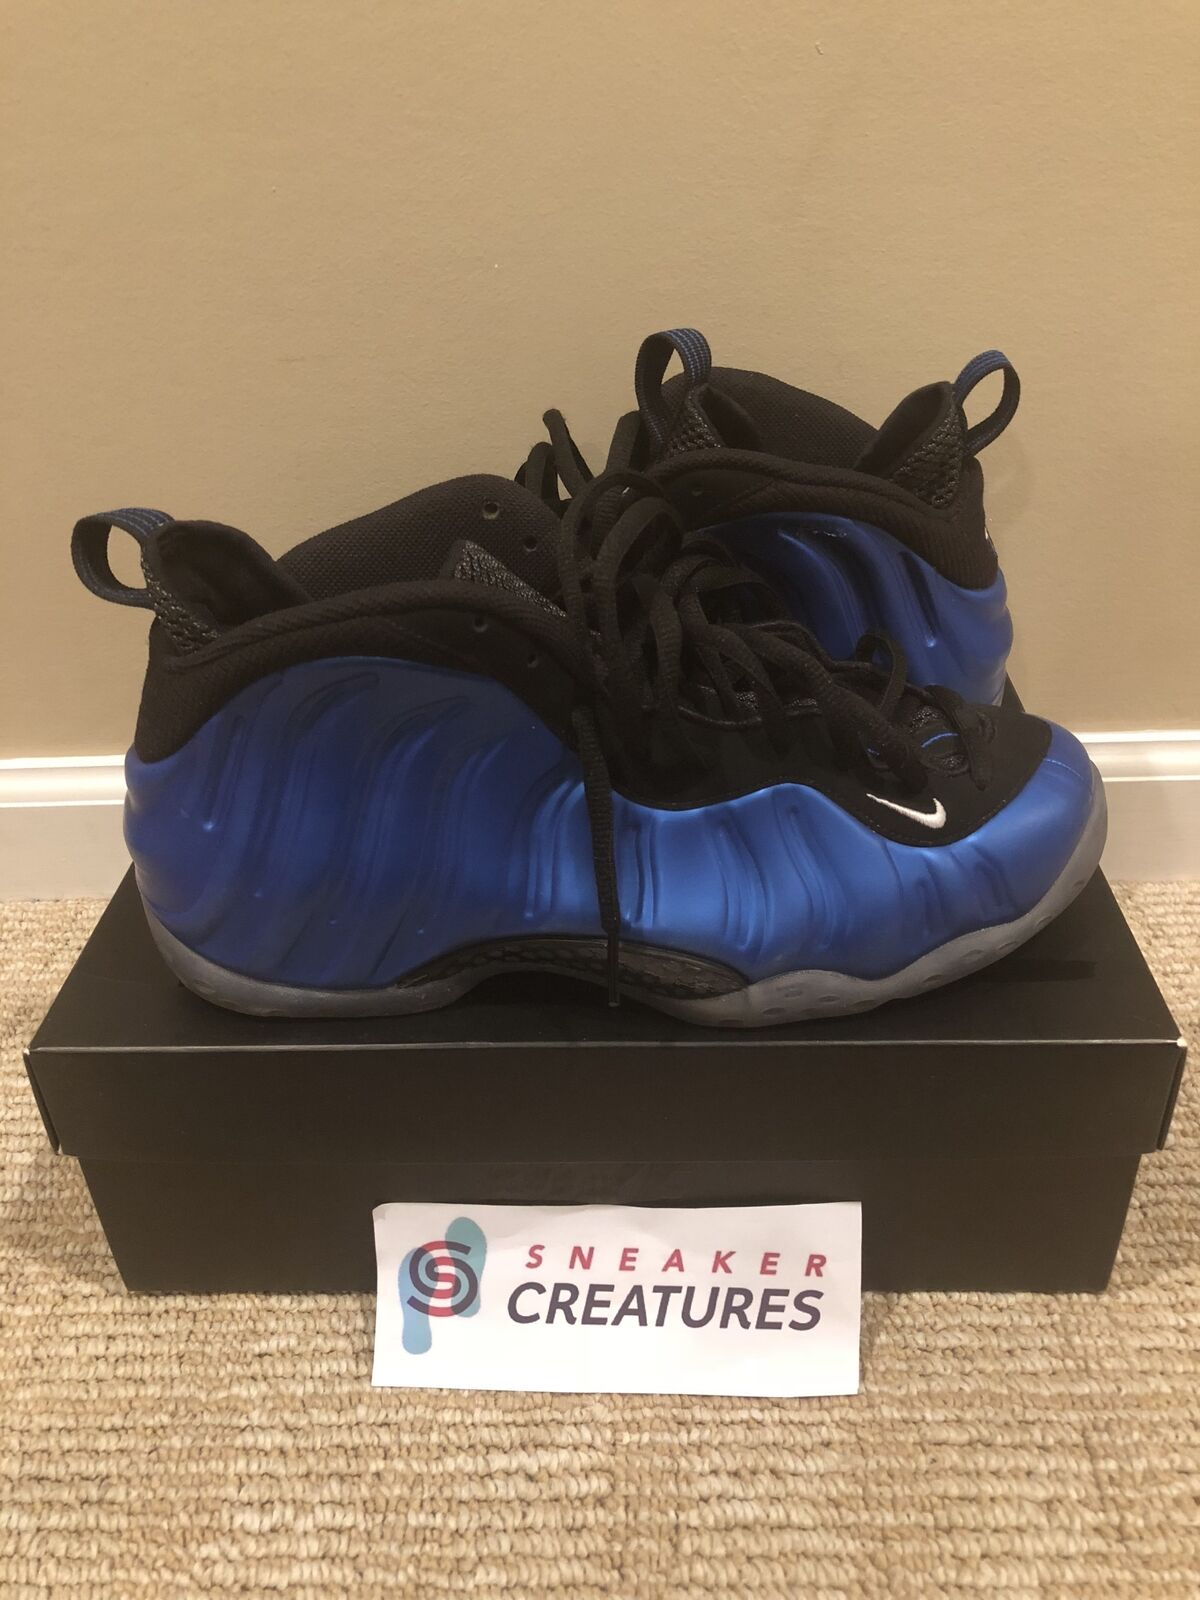 Royal One Foamposite 2017 895320 500 Size 10.5